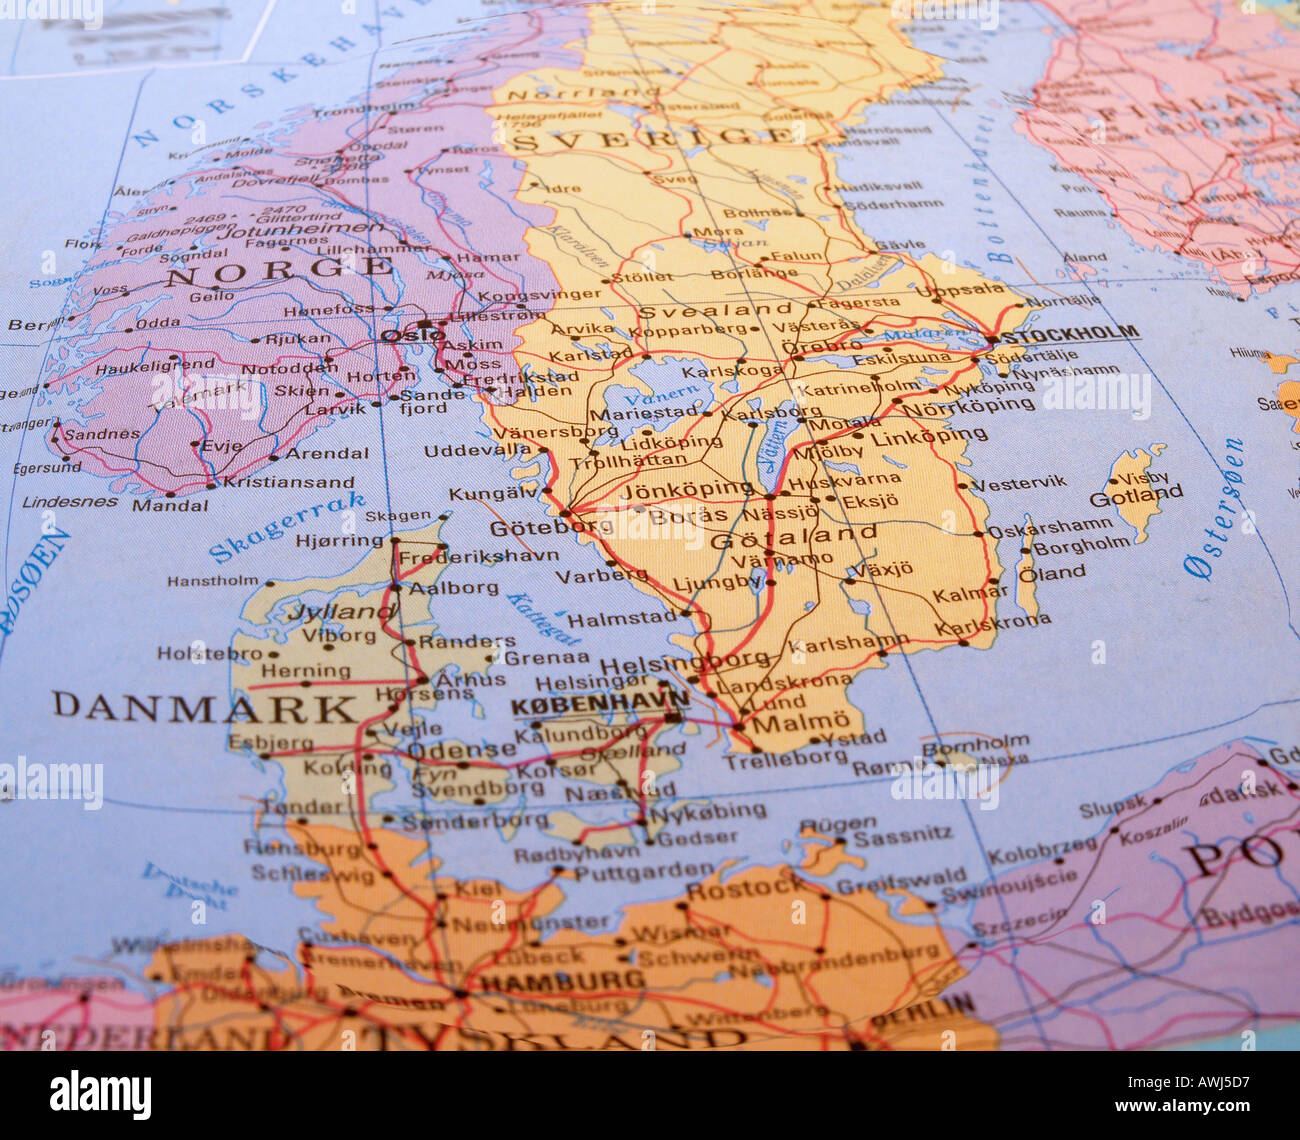 Scandinavia Map Stock Photos & Scandinavia Map Stock Images - Alamy